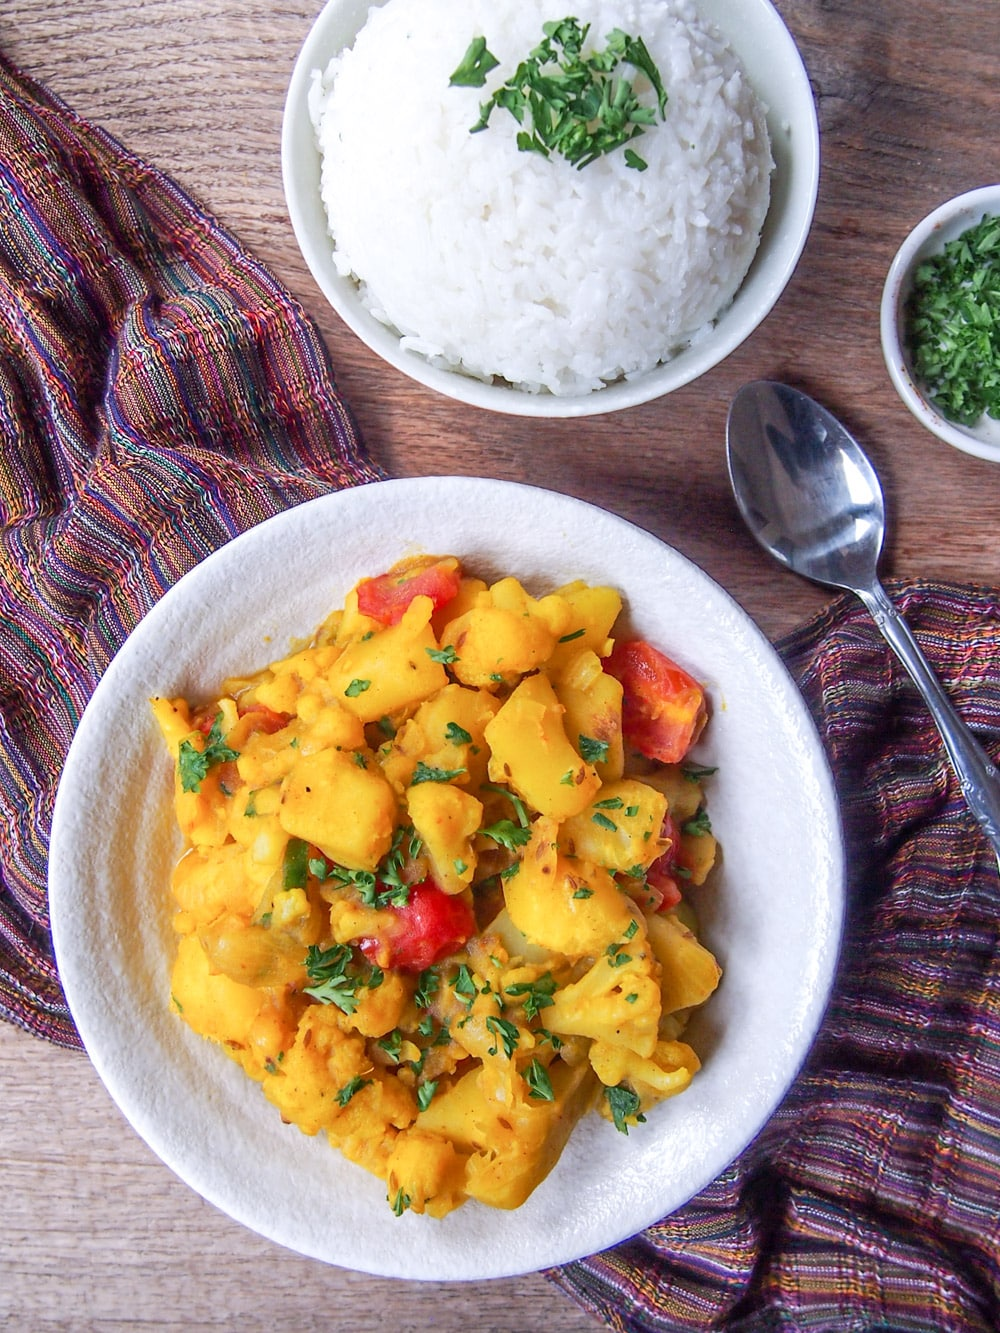 Aloo Gobi (Indian Spiced Potatoes and Cauliflower)